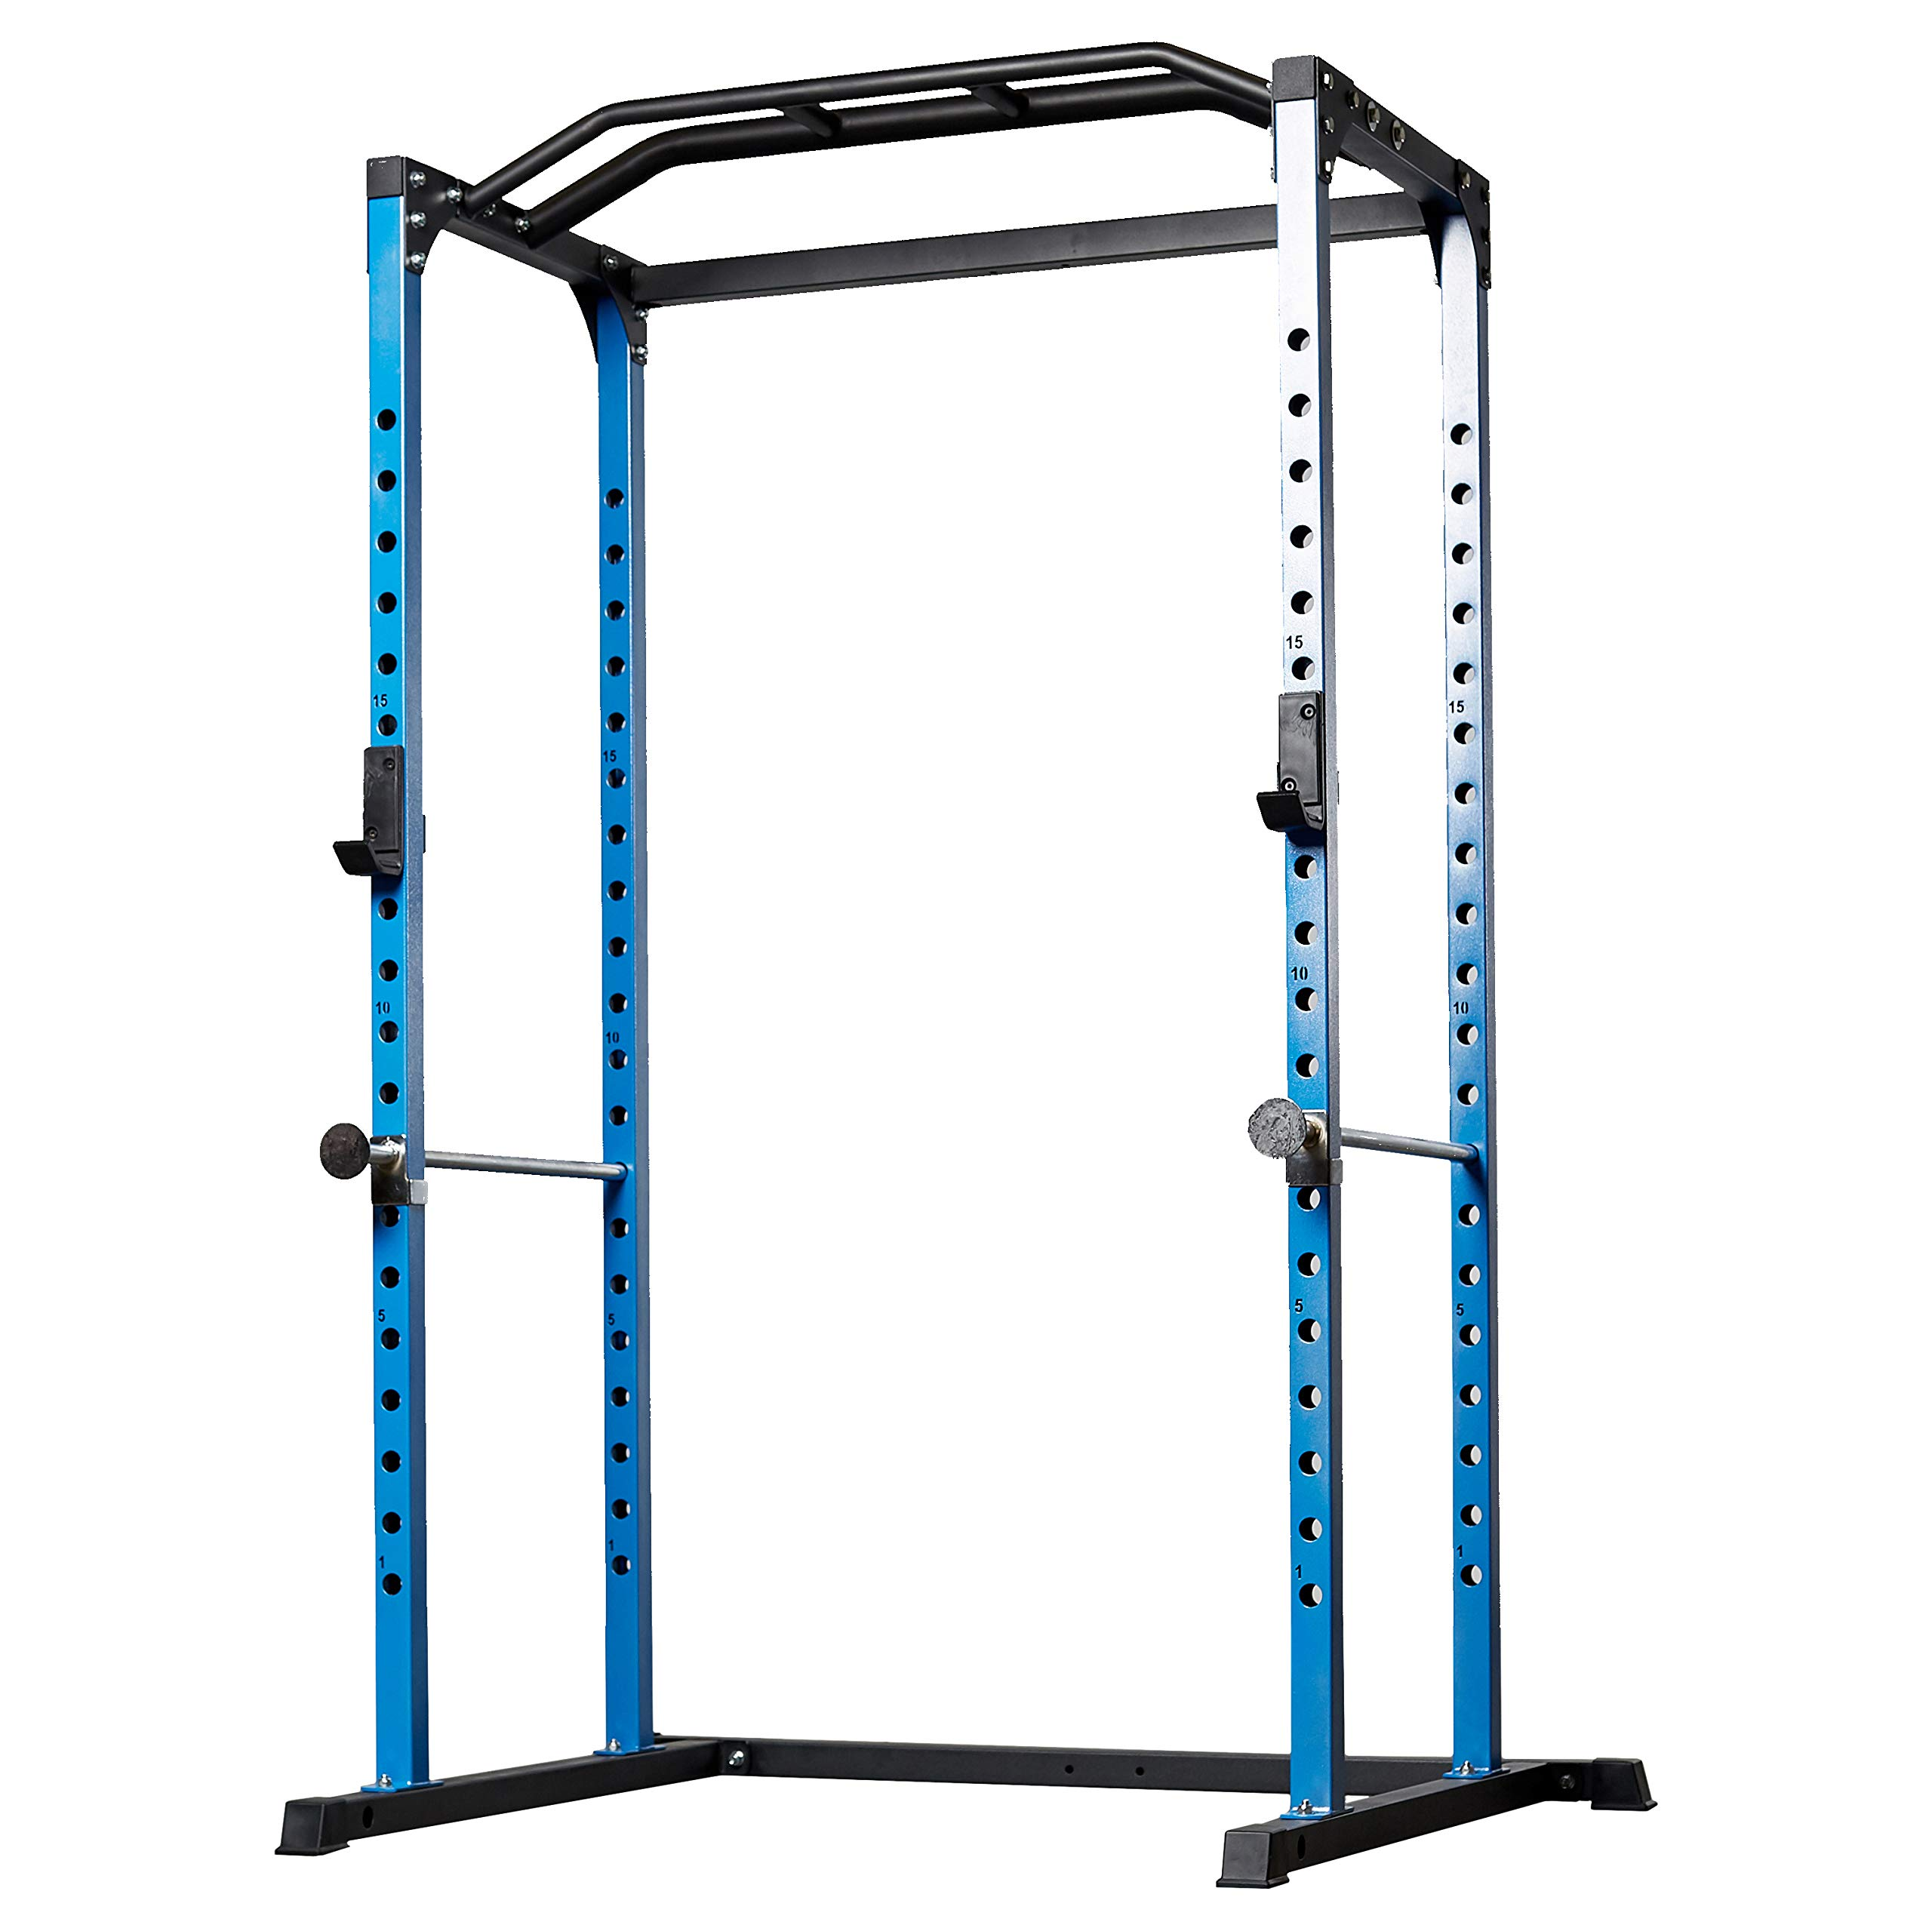 Rep PR-1100 Power Rack - 1,000 lbs Rated Lifting Cage for Weight Training (Blue Power Rack, No Bench)